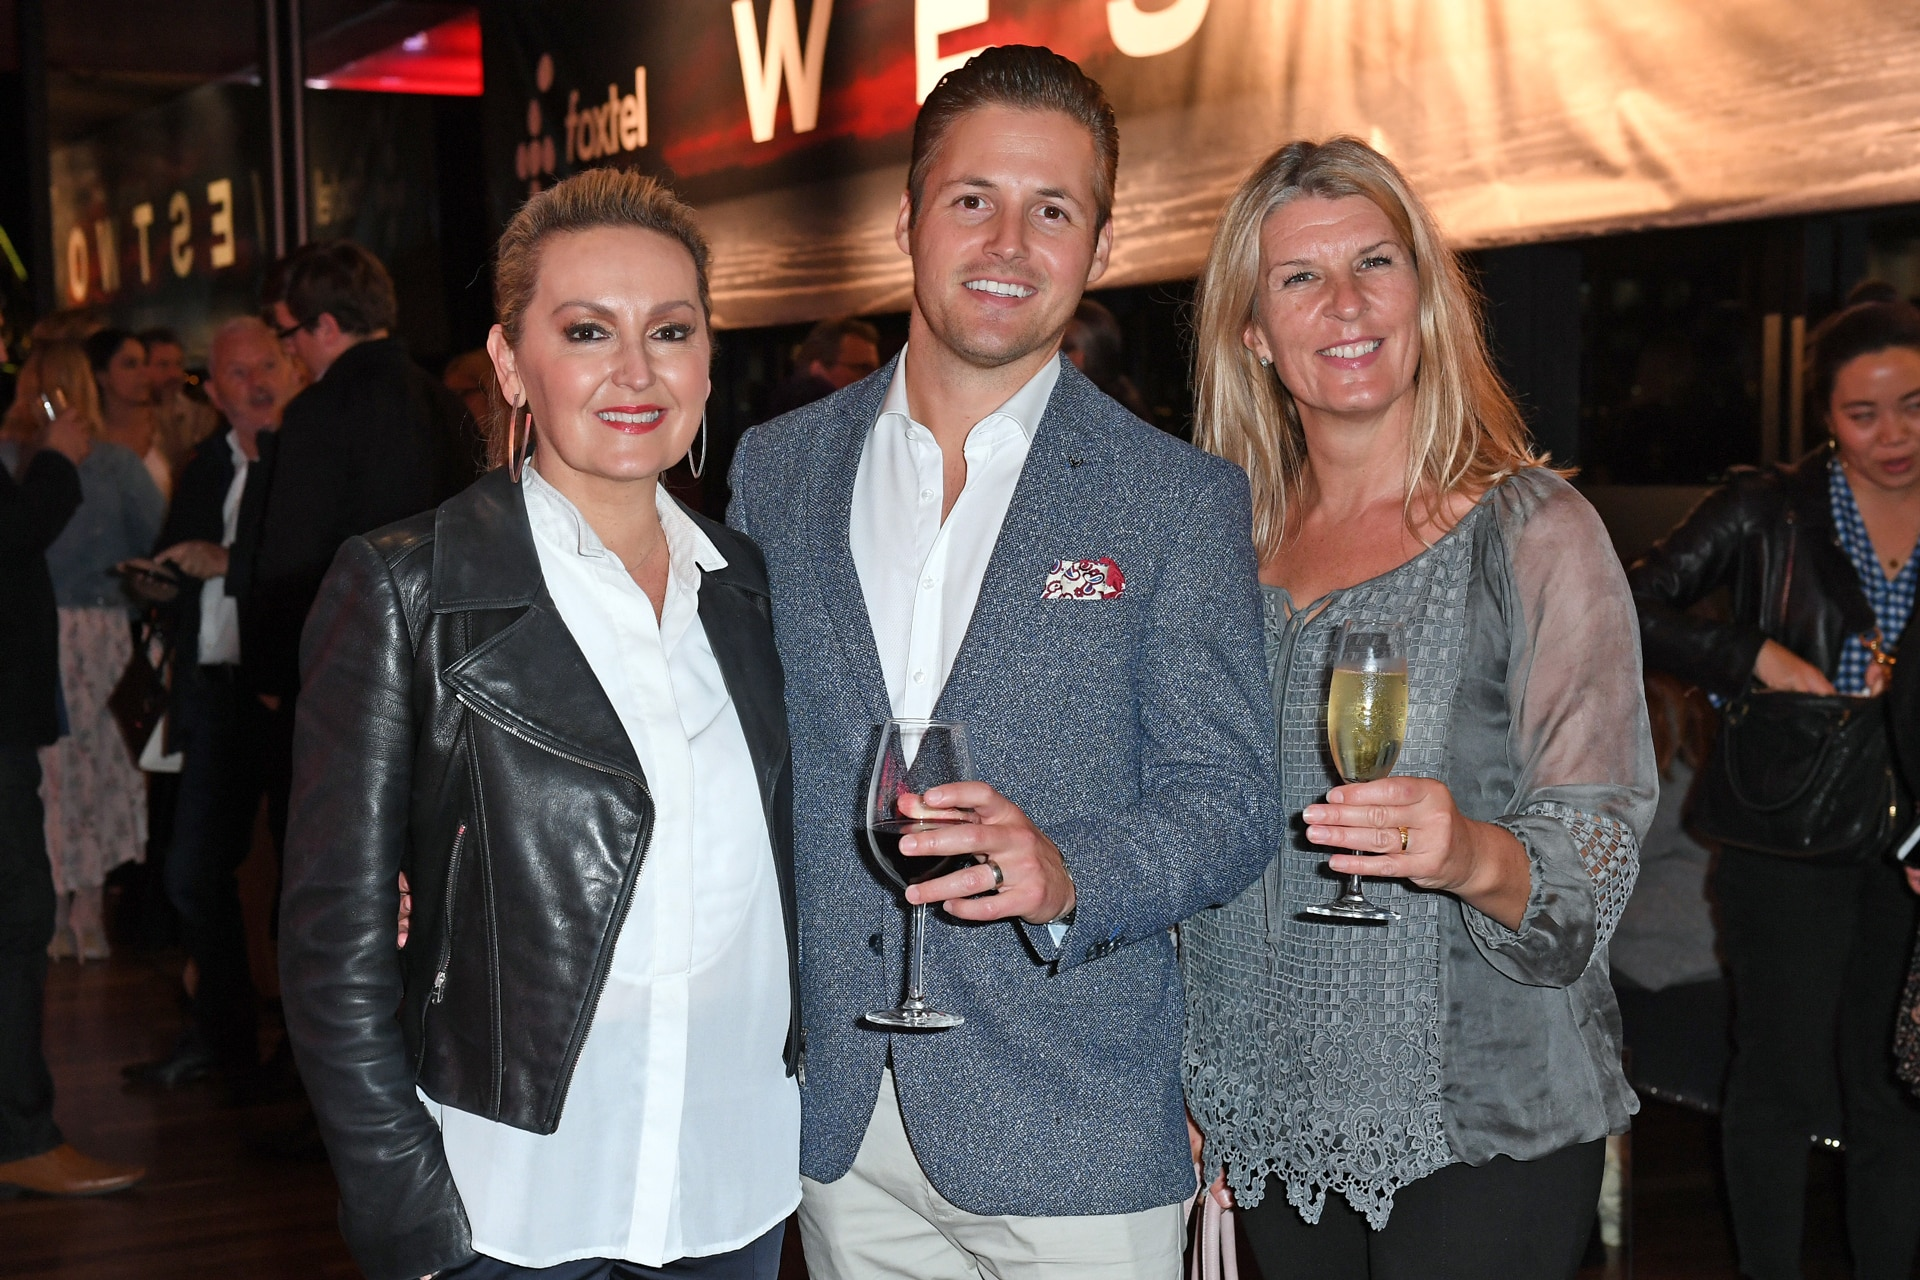 Melissa Hoyer, Guy Binder and Amy Cooper attend the Westworldparty hosted by Foxtel. Image credit: Supplied